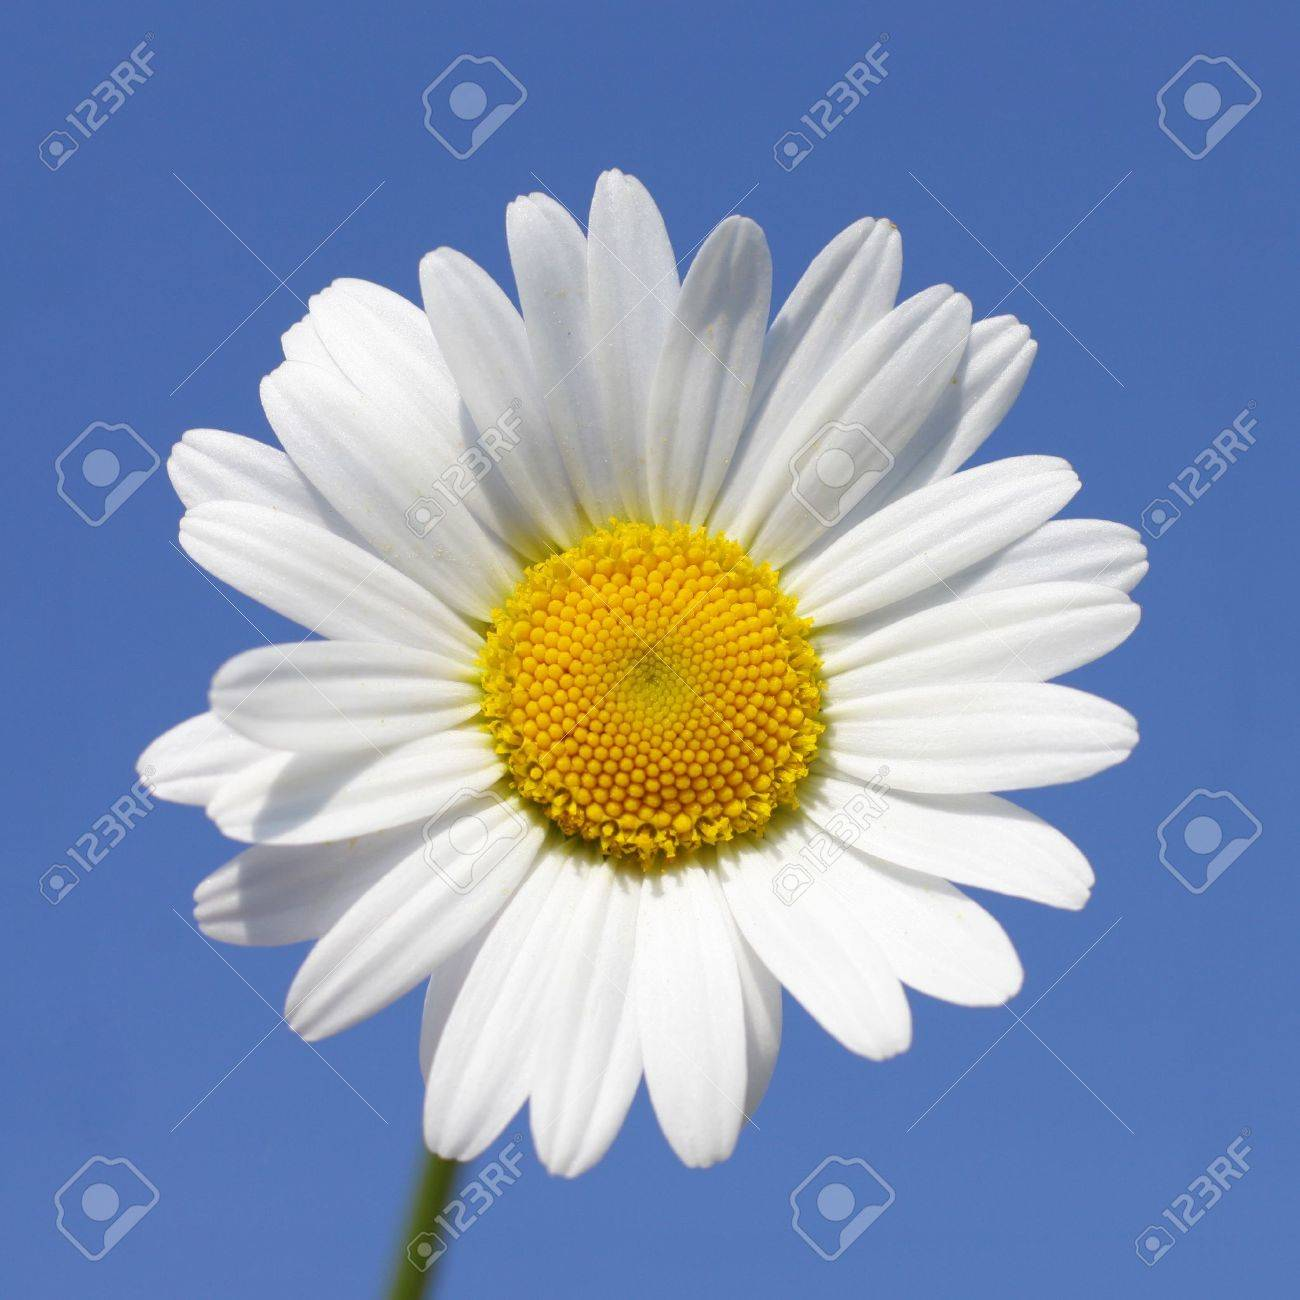 close up of daisy flower in sunny day stock photo, picture and, Beautiful flower